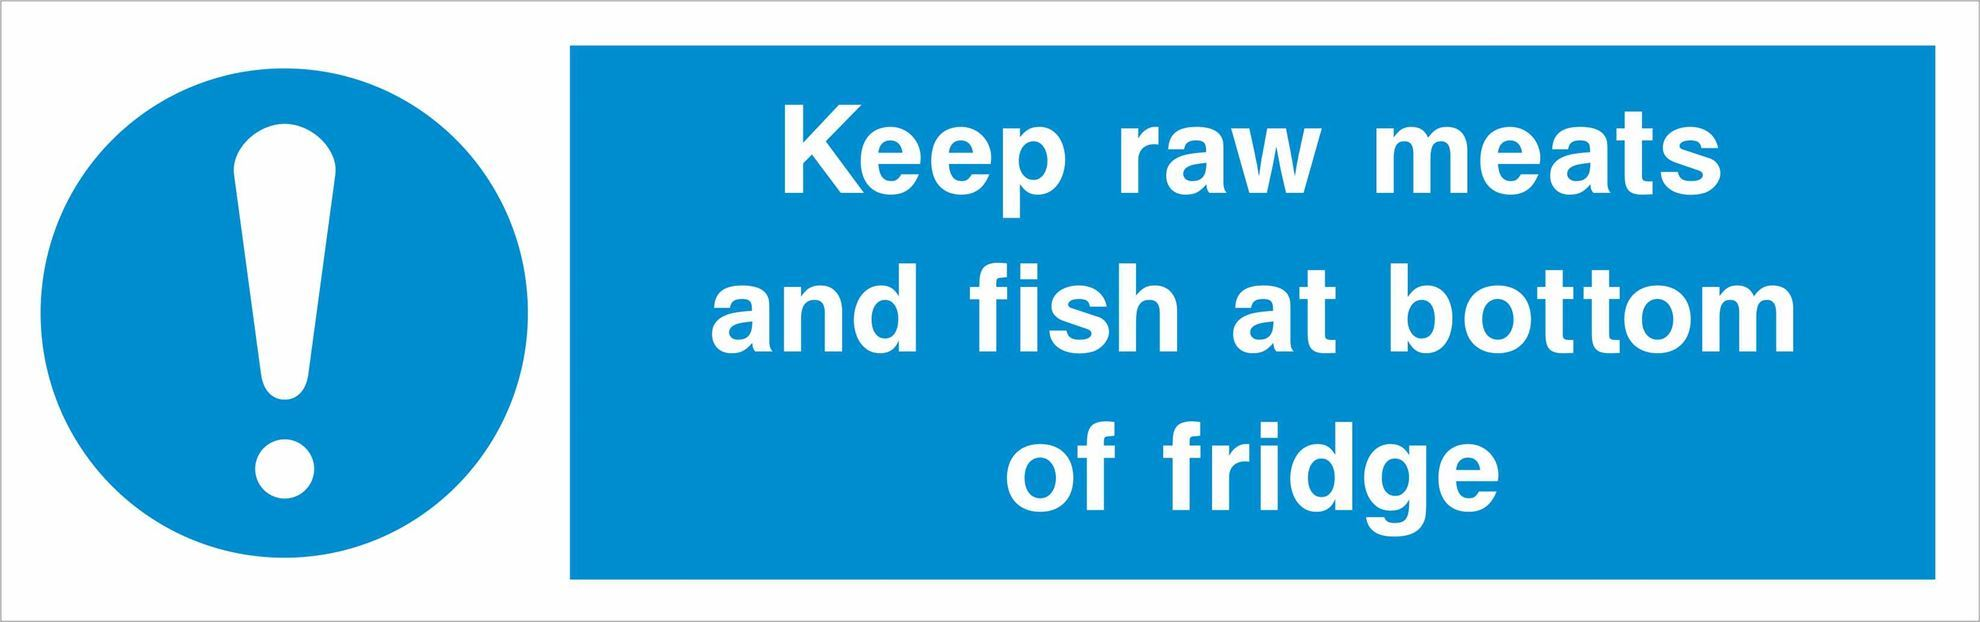 Keep raw meats and fish at bottom of fridge